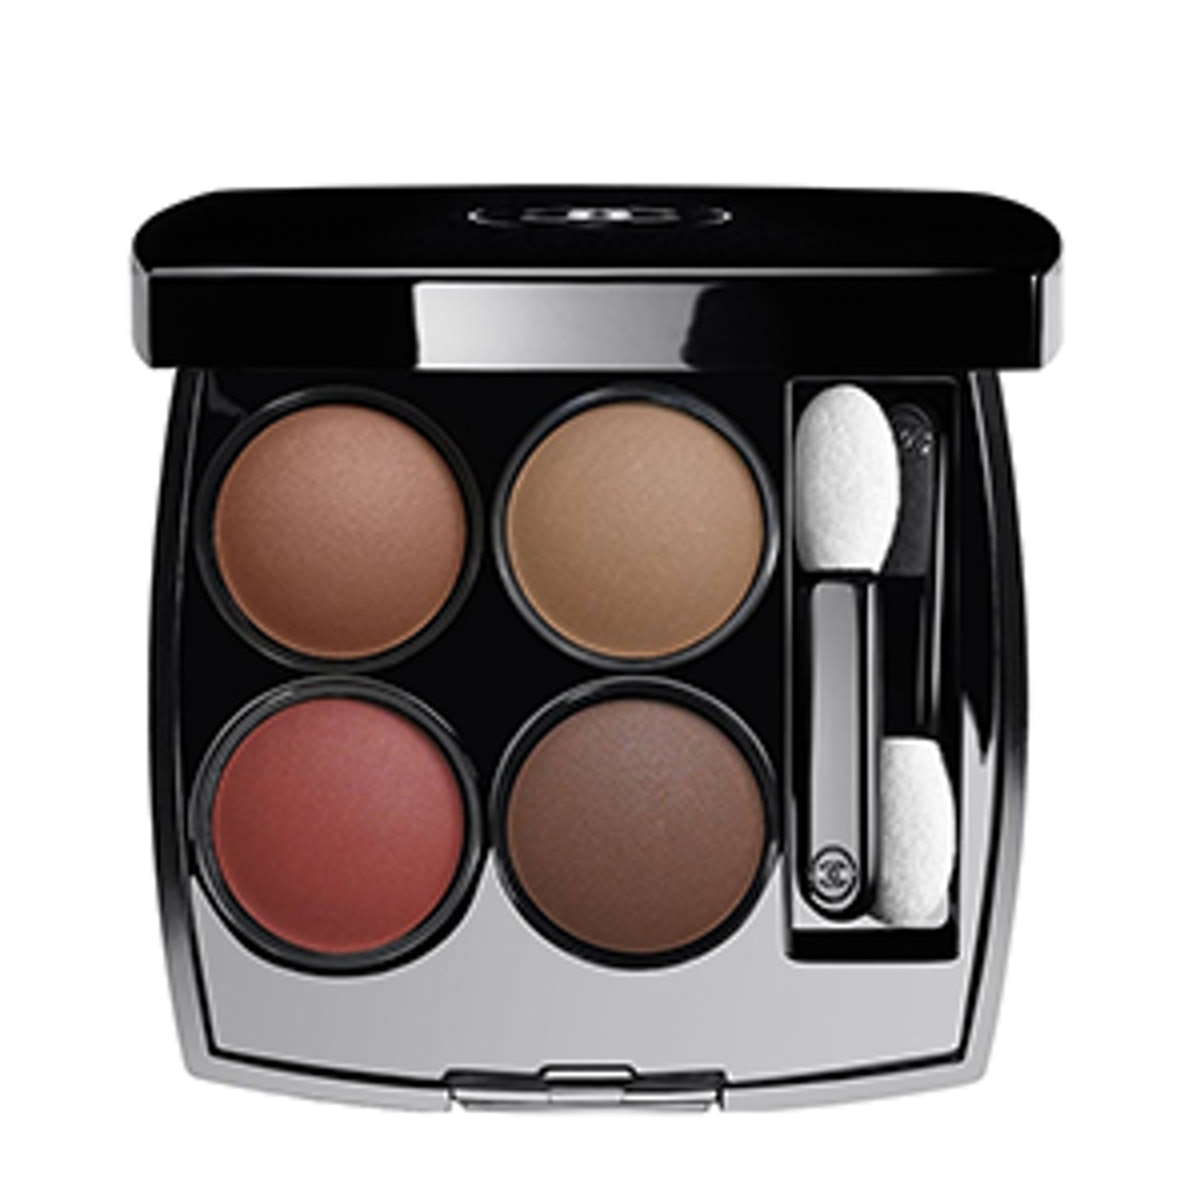 4 Ombres Multi-Effect Quadra Eyeshadow in Candeur Et Experience